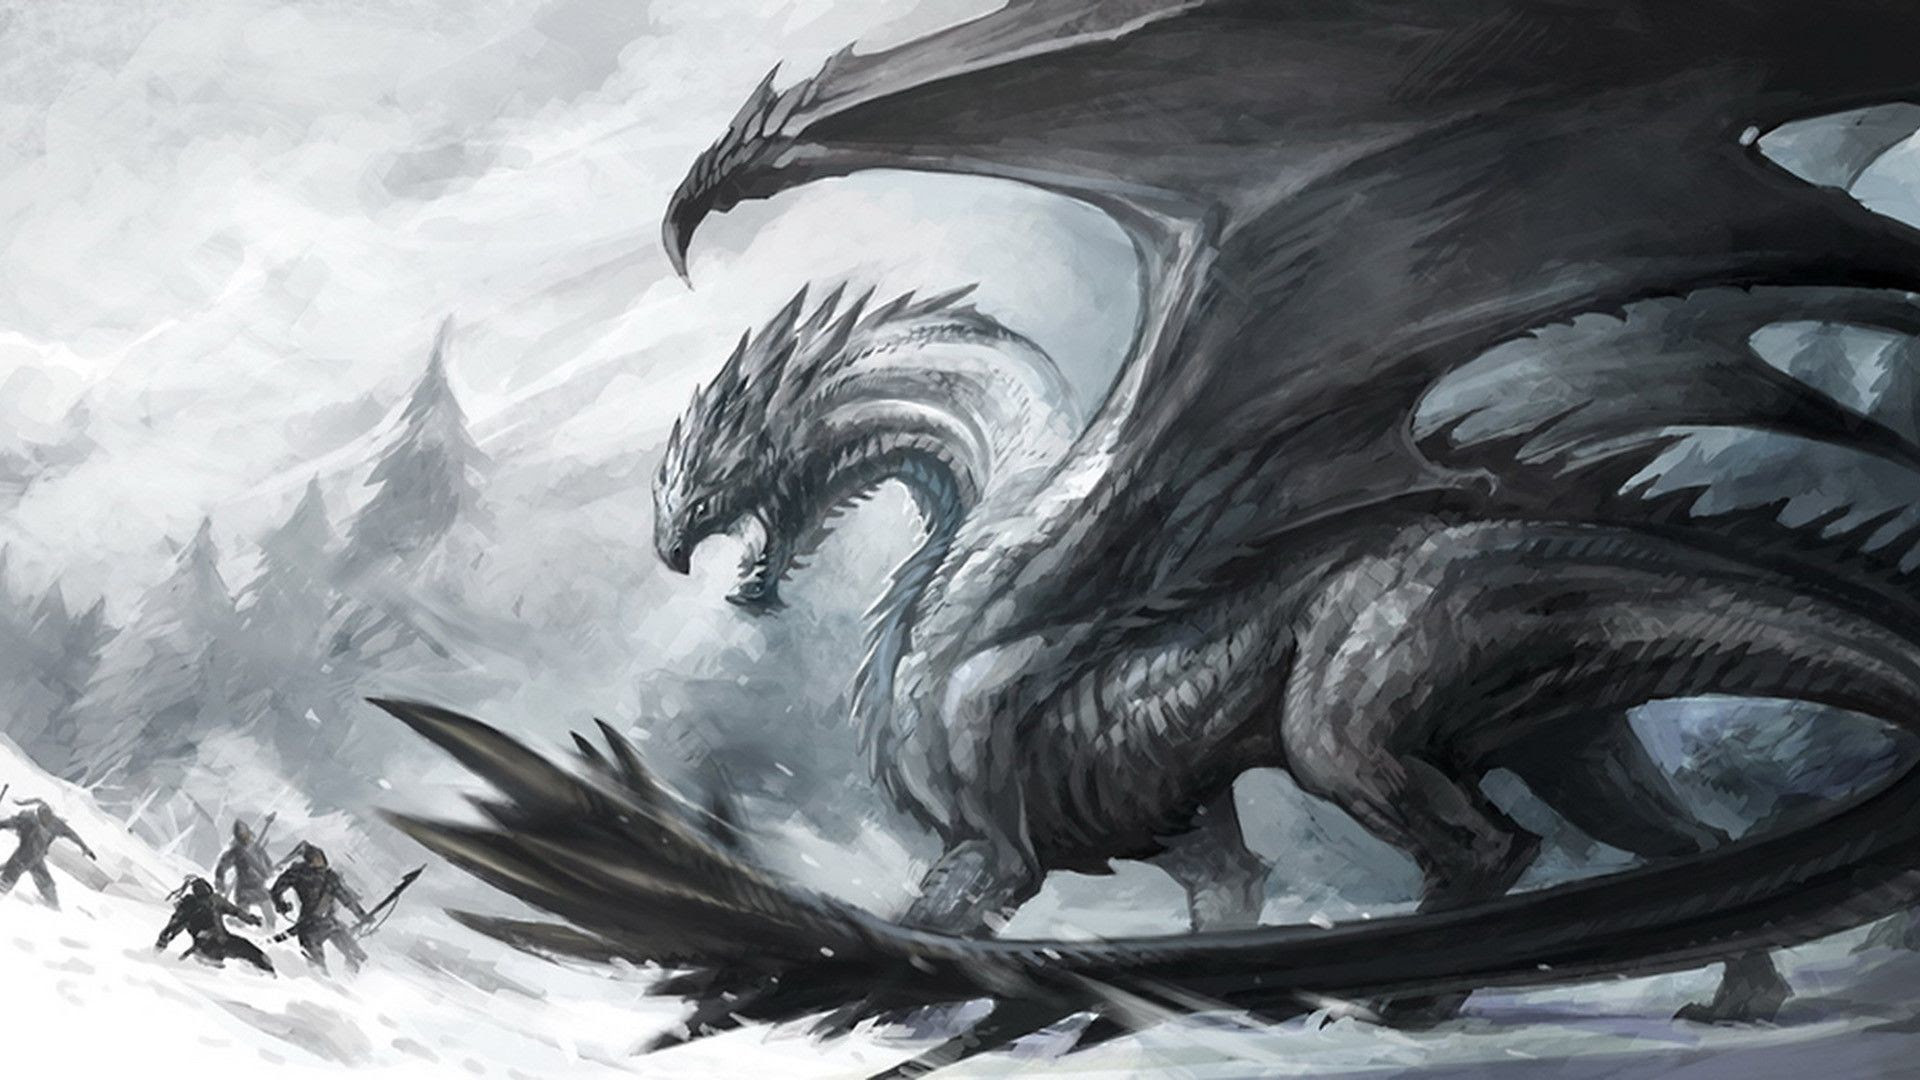 Black Dragon Wallpapers 65 Images